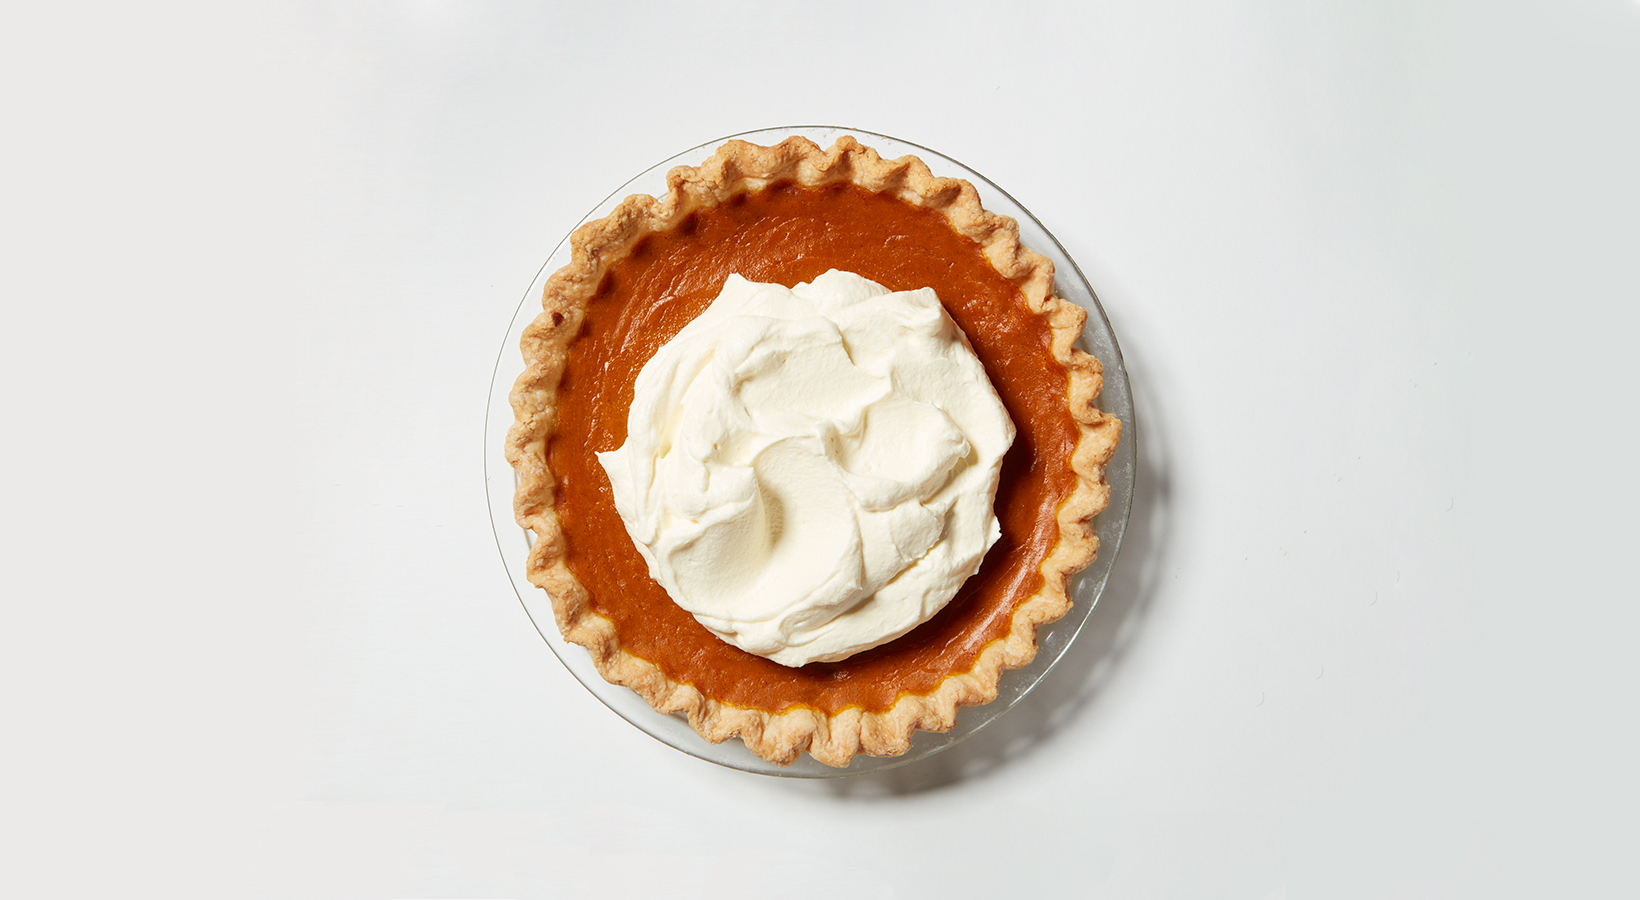 Pumpkin Pie With Fresh Pumpkin